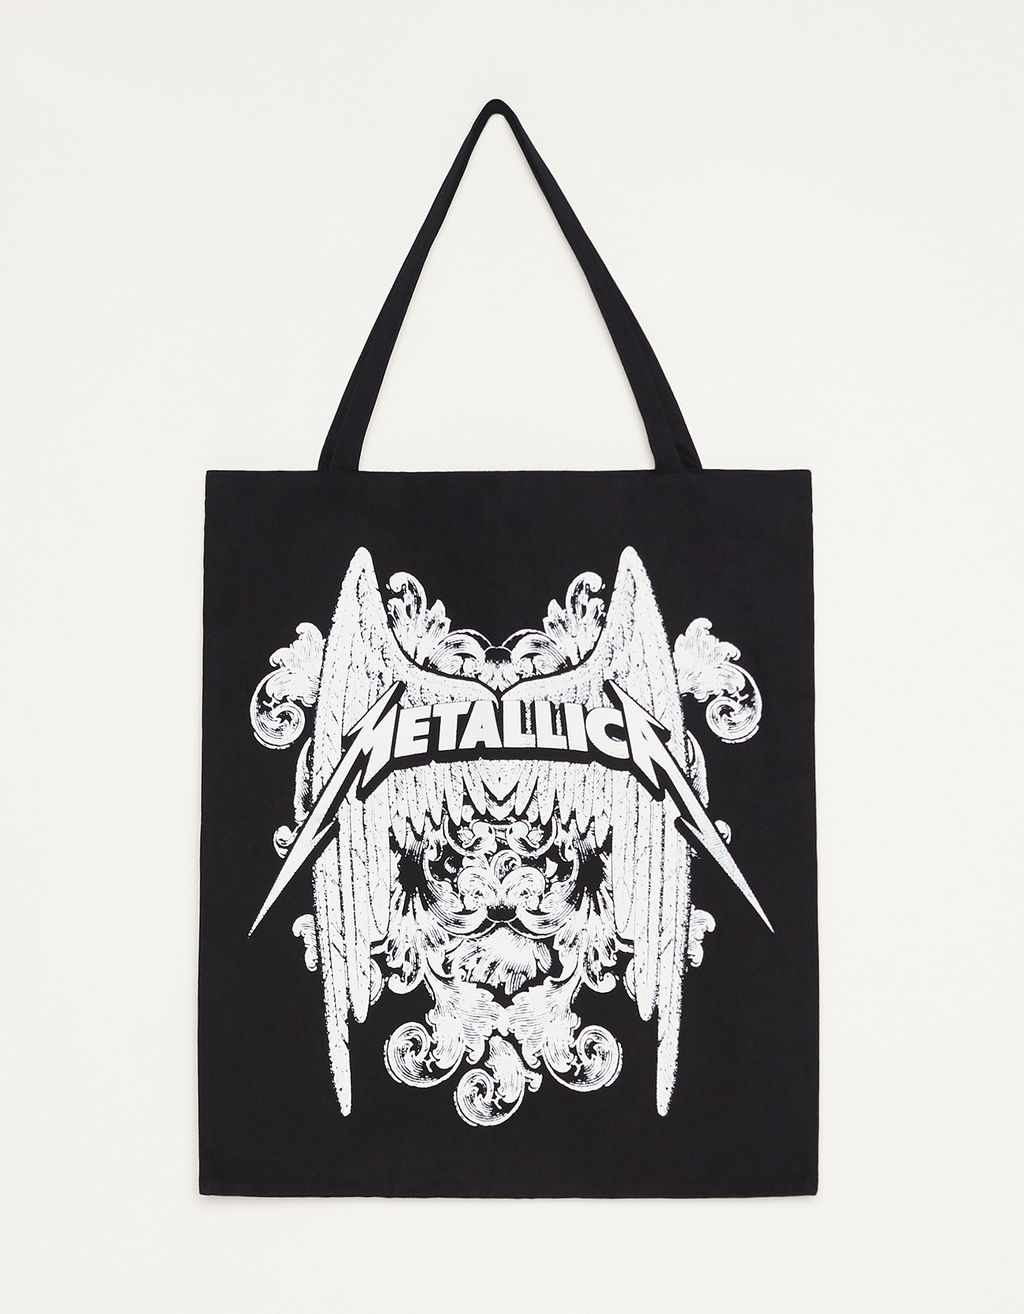 Borsa shopper Metallica